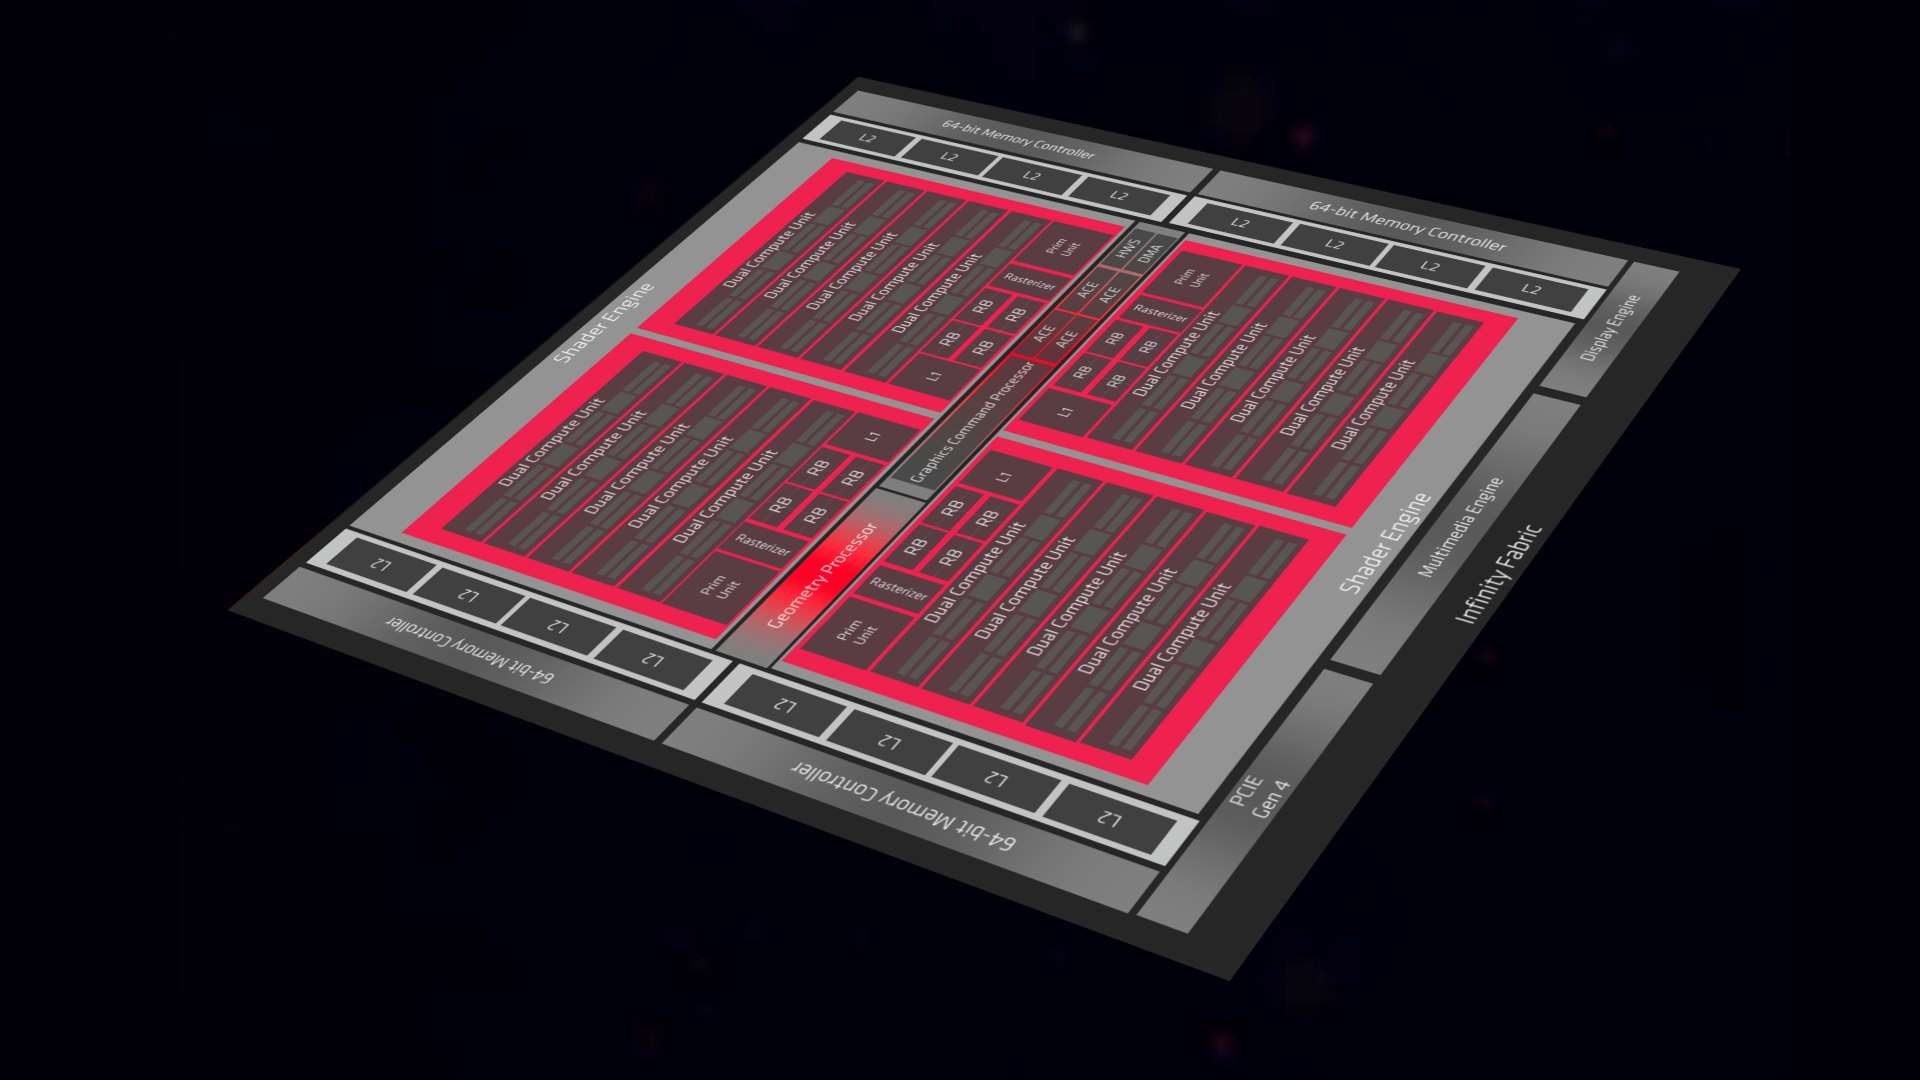 Amd Navi Gpu Stack Bares All In Linux Graphics Driver Update Pcgamesn